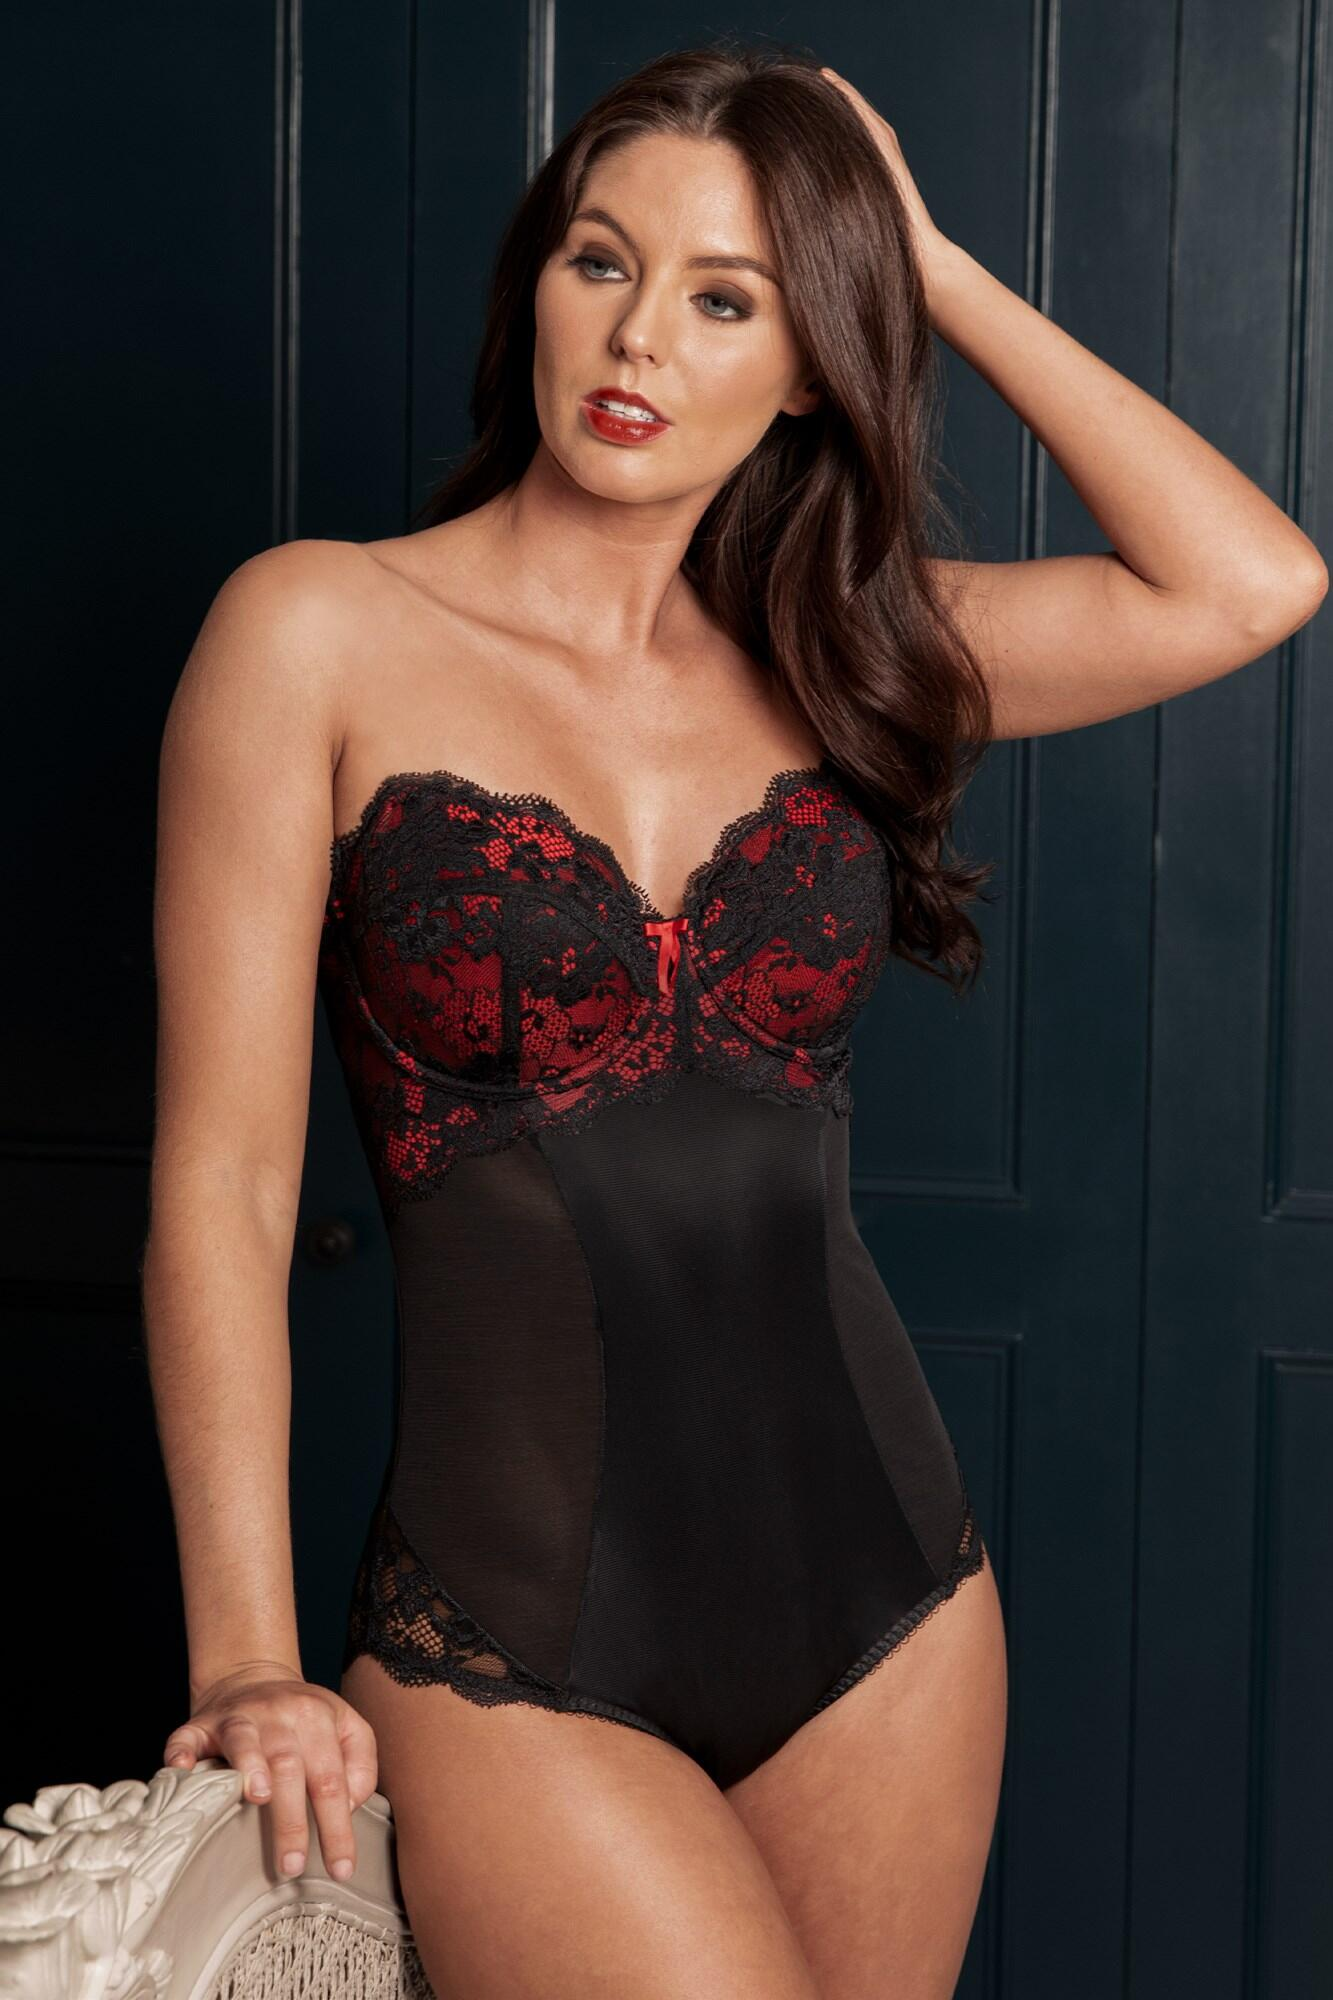 Amour Strapless Lightly Padded Underwired Body - Black/Scarlet